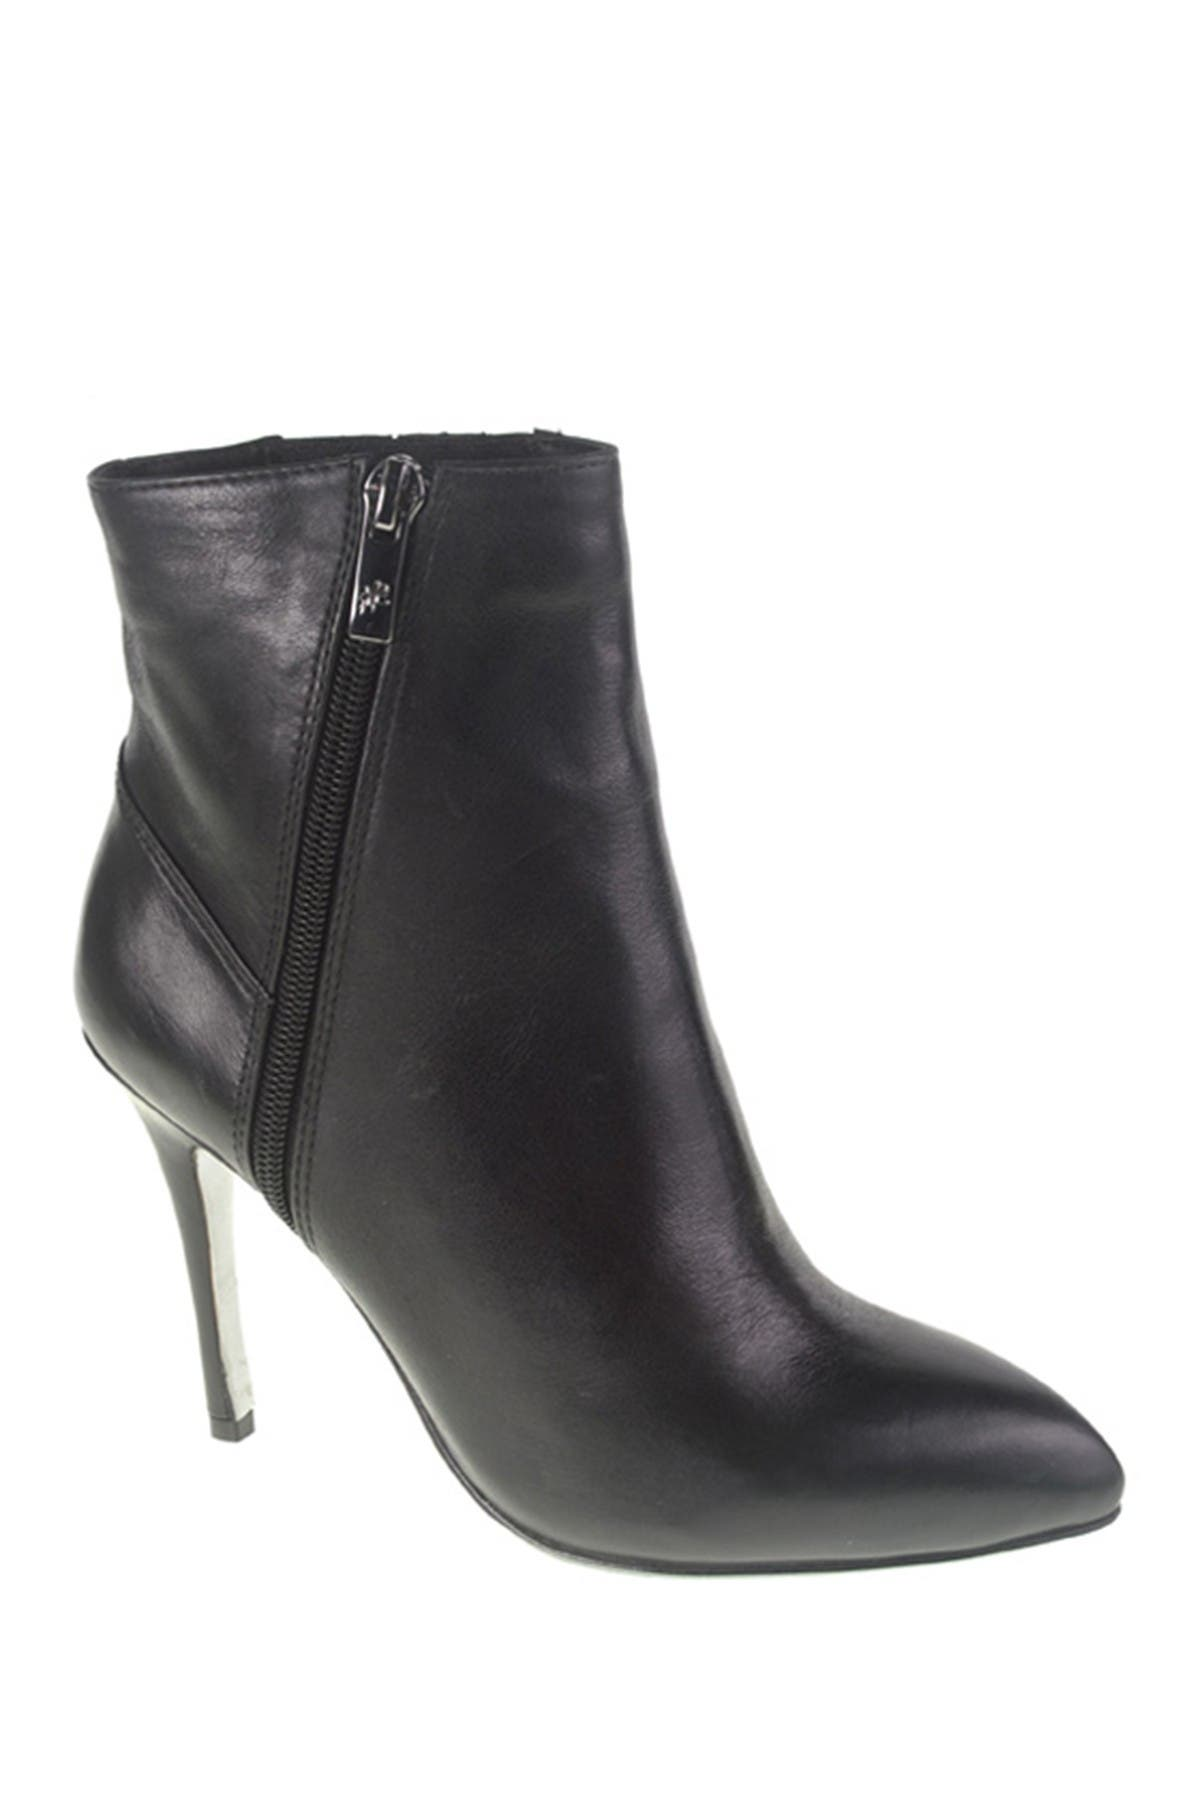 Image of Kristin Cavallari by Chinese Laundry Caylin Leather Stiletto Bootie